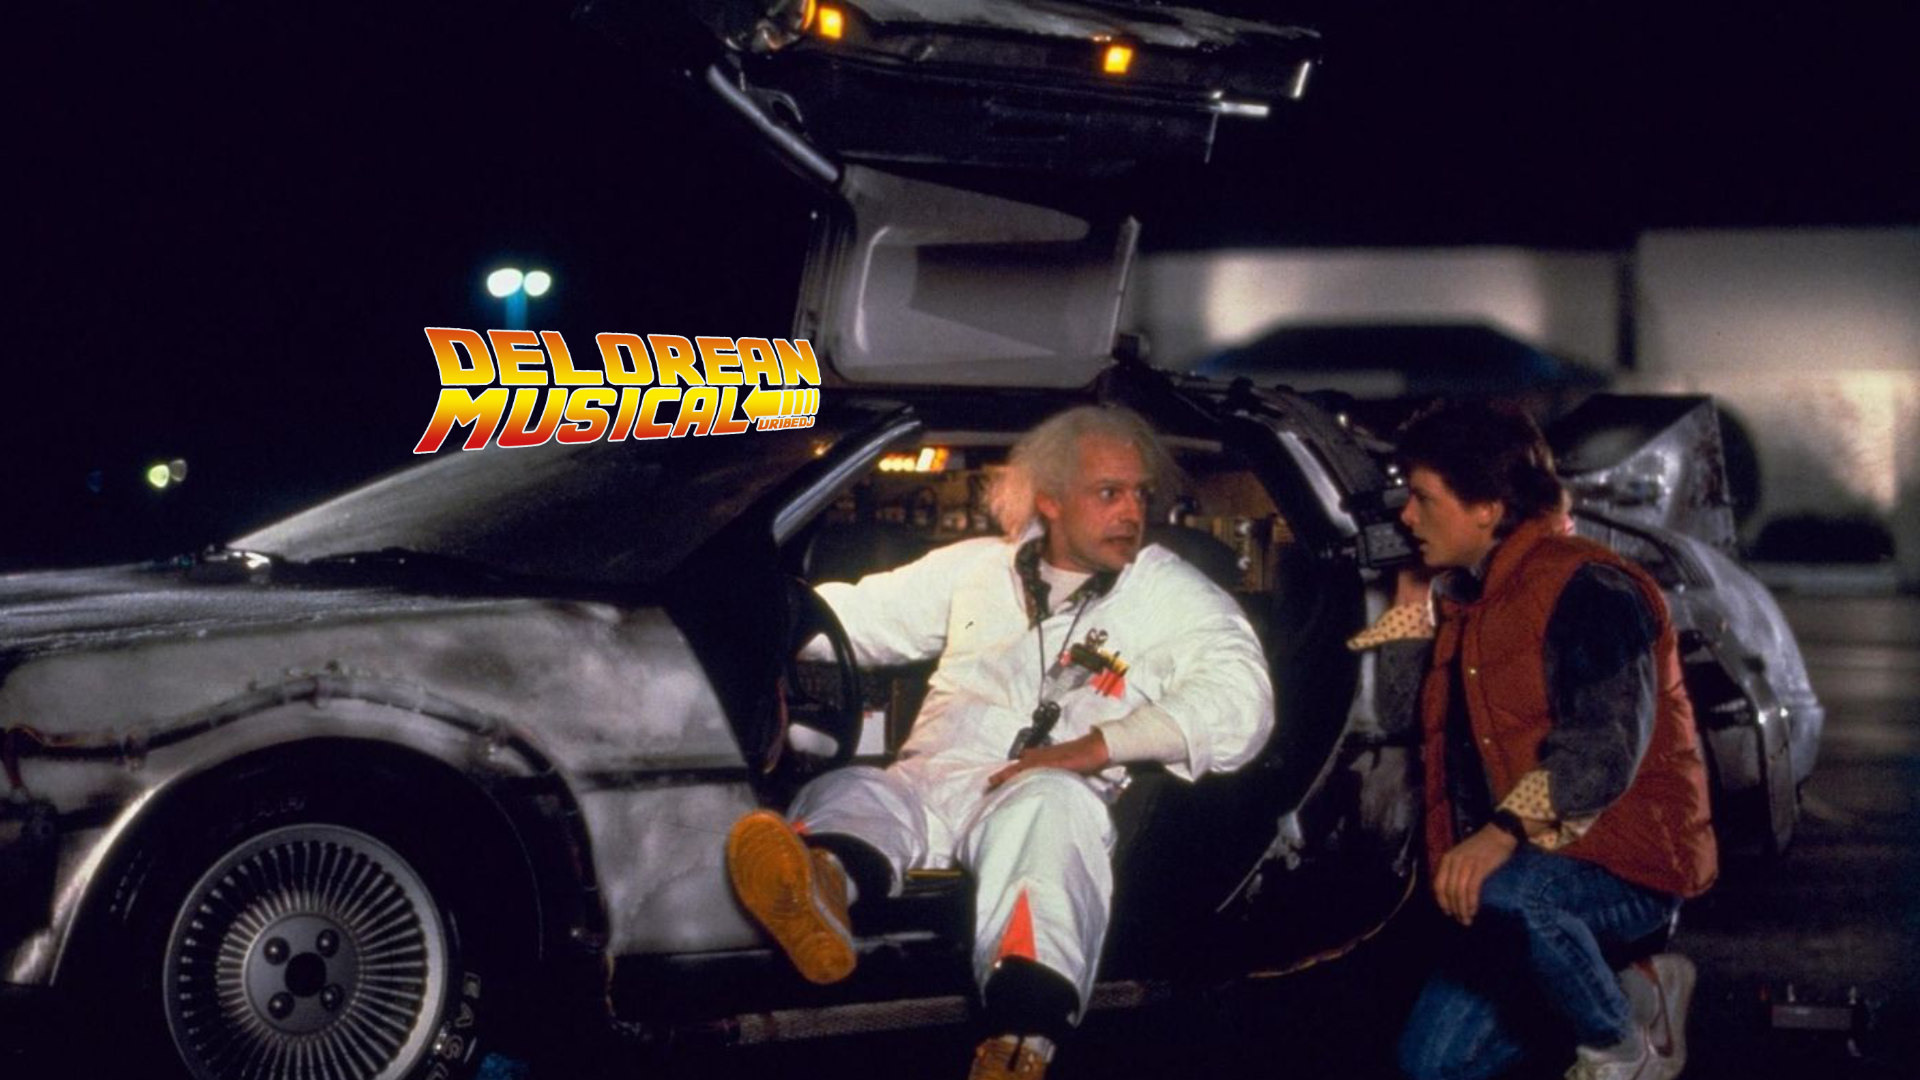 DeLorean Musical episodio 3: Money For Nothing.